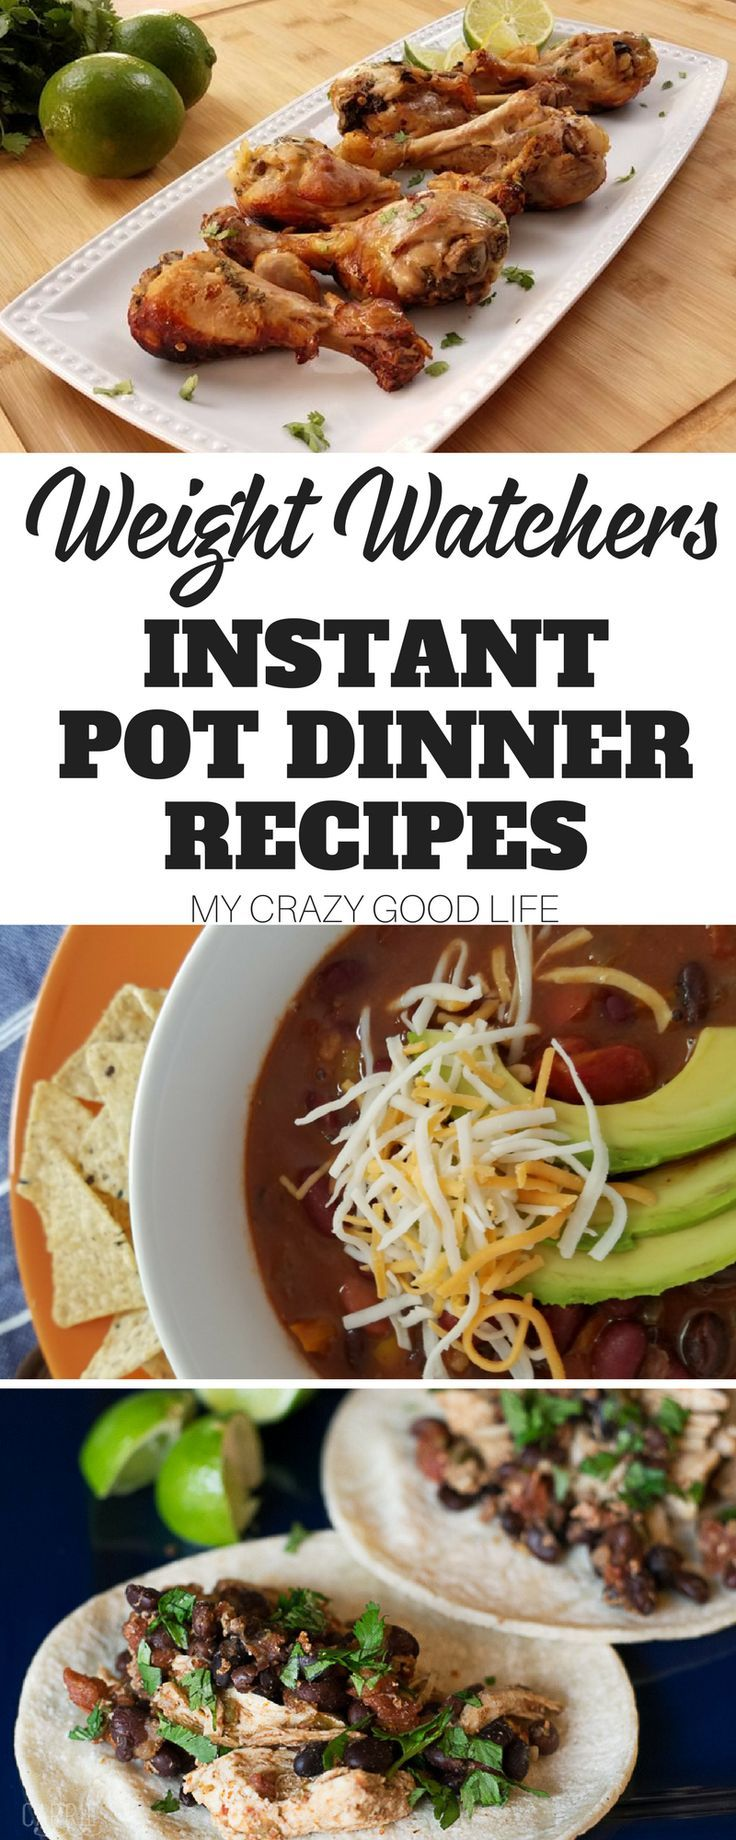 It's no secret that I love my Instant Pot, they make meal time a breeze. If you are on Weight Watchers or any other healthy eating plan, you won't want to miss this collection of delicious recipes. These Weight Watchers Instant Pot dinners all have IP dir